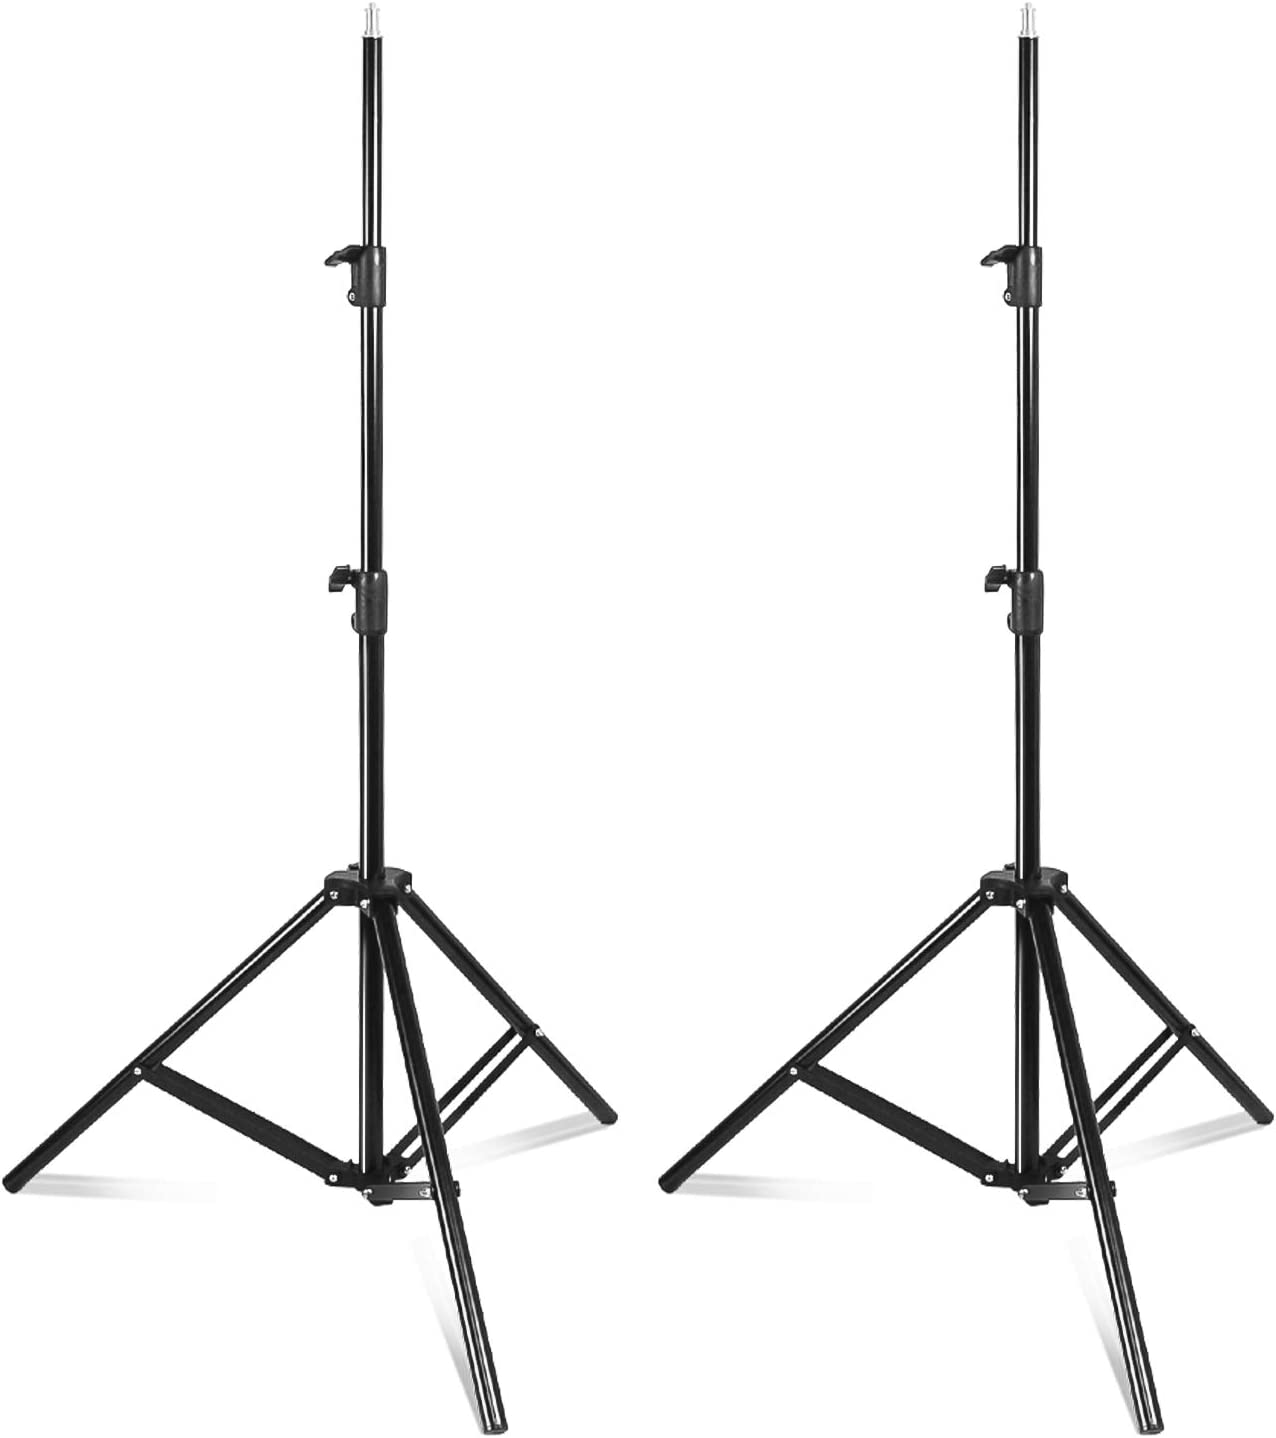 AGG2944 Limo Studio 2 Pack 86.5 Aluminum Light Photography Tripod Stand for Photo Studio